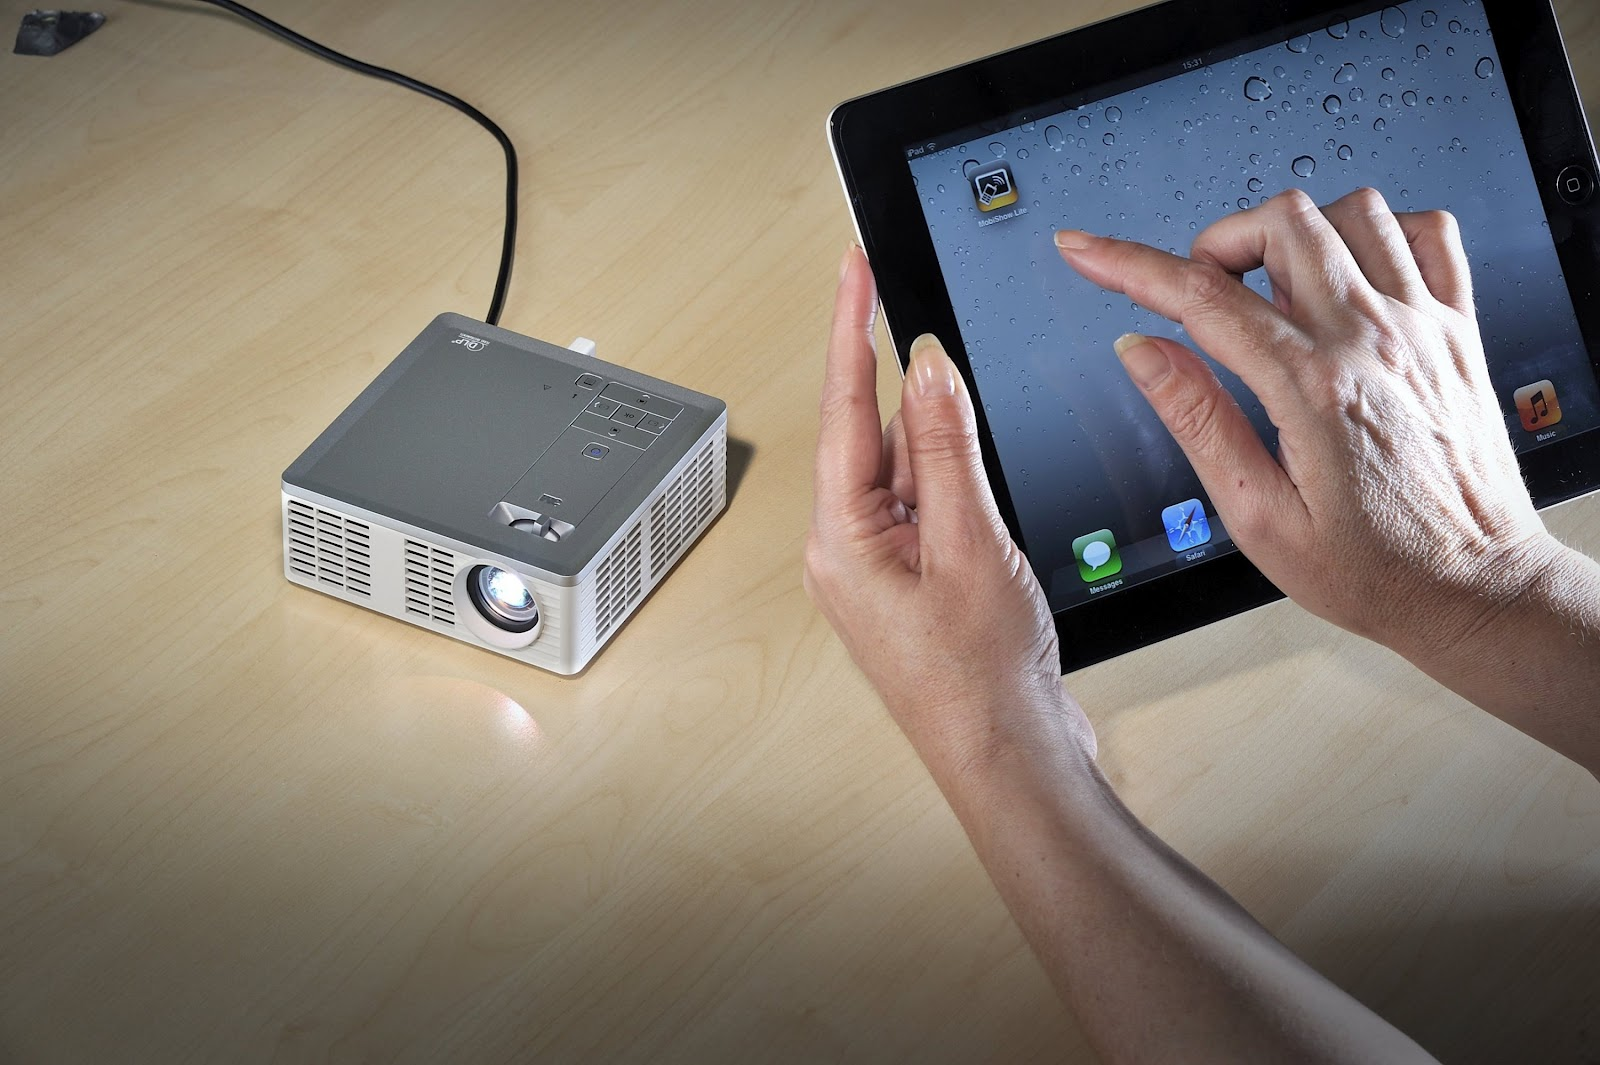 3m mp220 and mp410 portable projectors for Ipad projector reviews